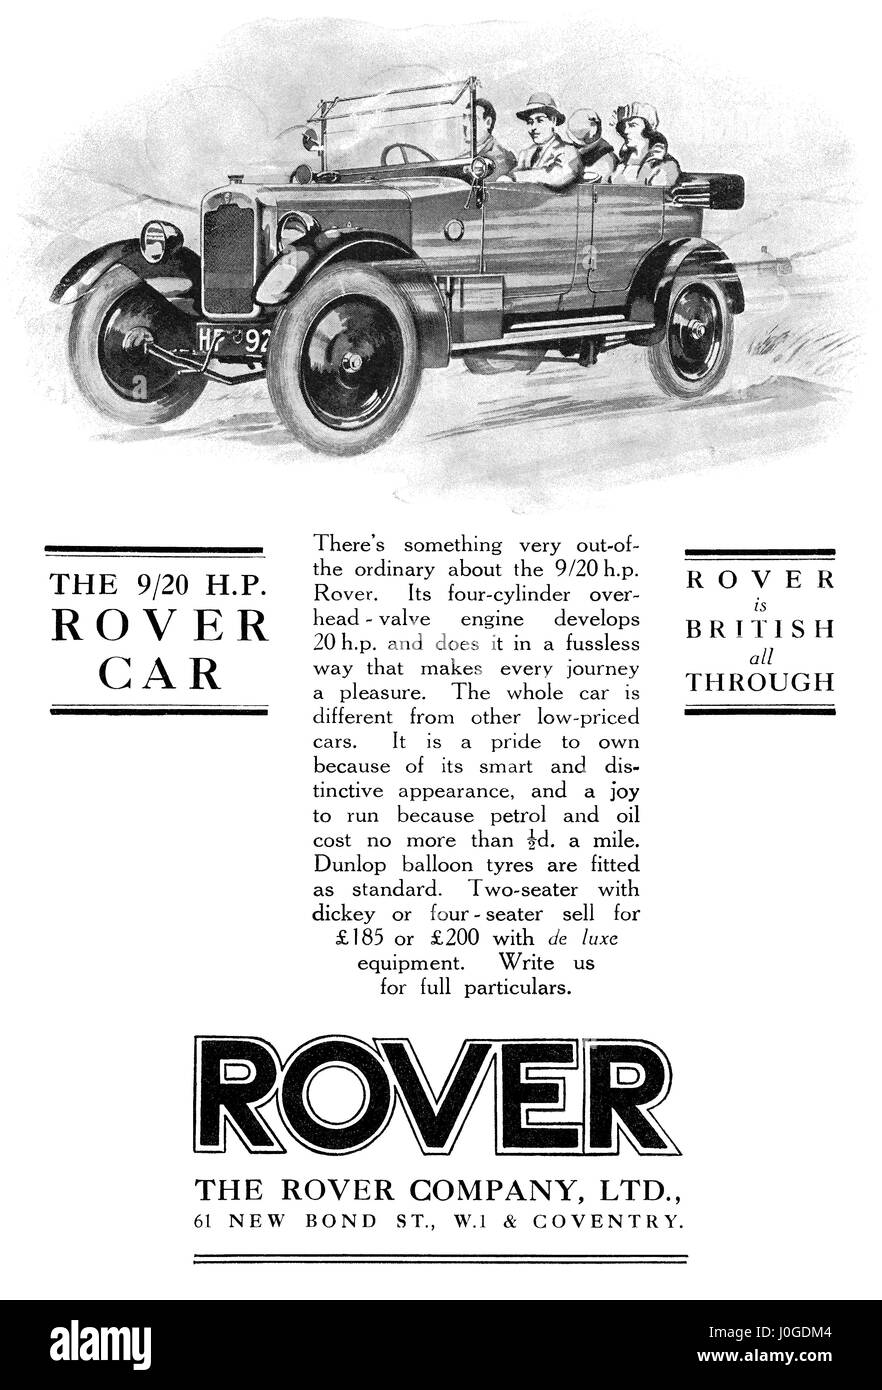 1925 British advertisement for 9/20 H.P. Rover Car. Stock Photo